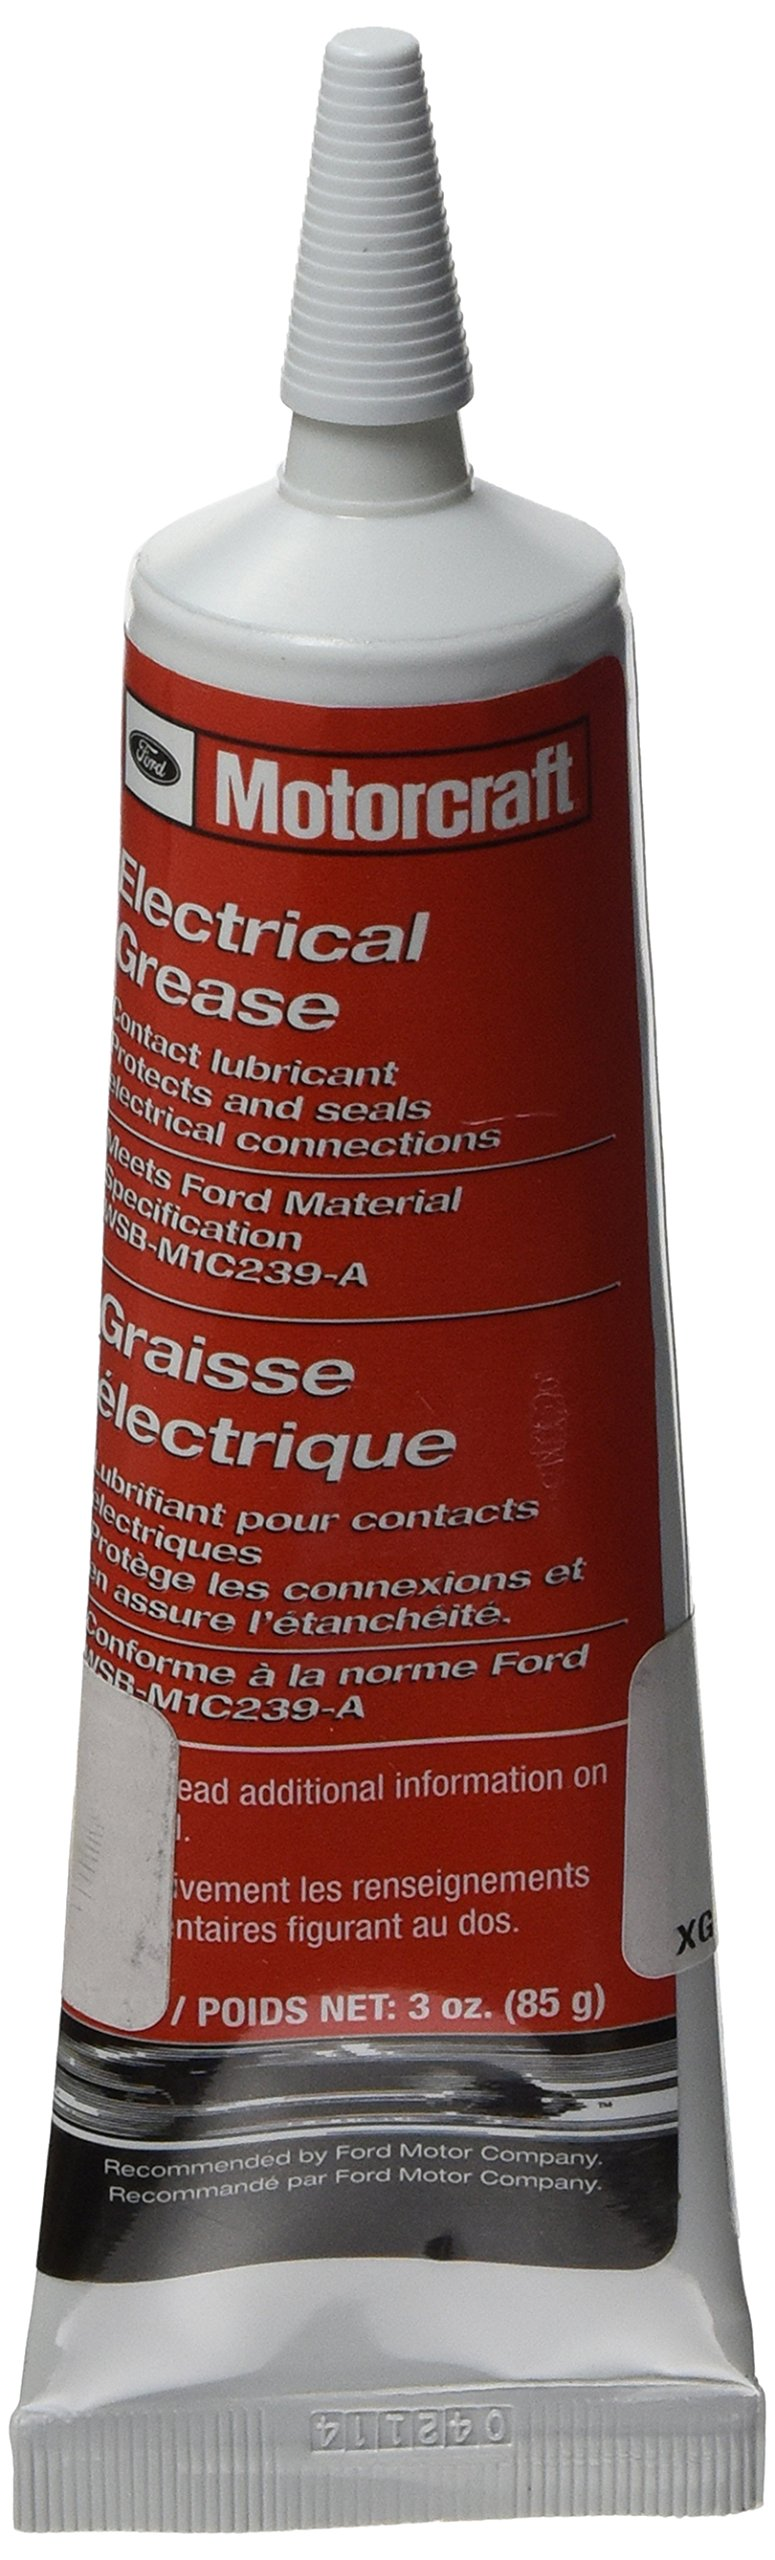 Genuine Ford Fluid XG-12 Electrical Grease - 3 oz. by Ford